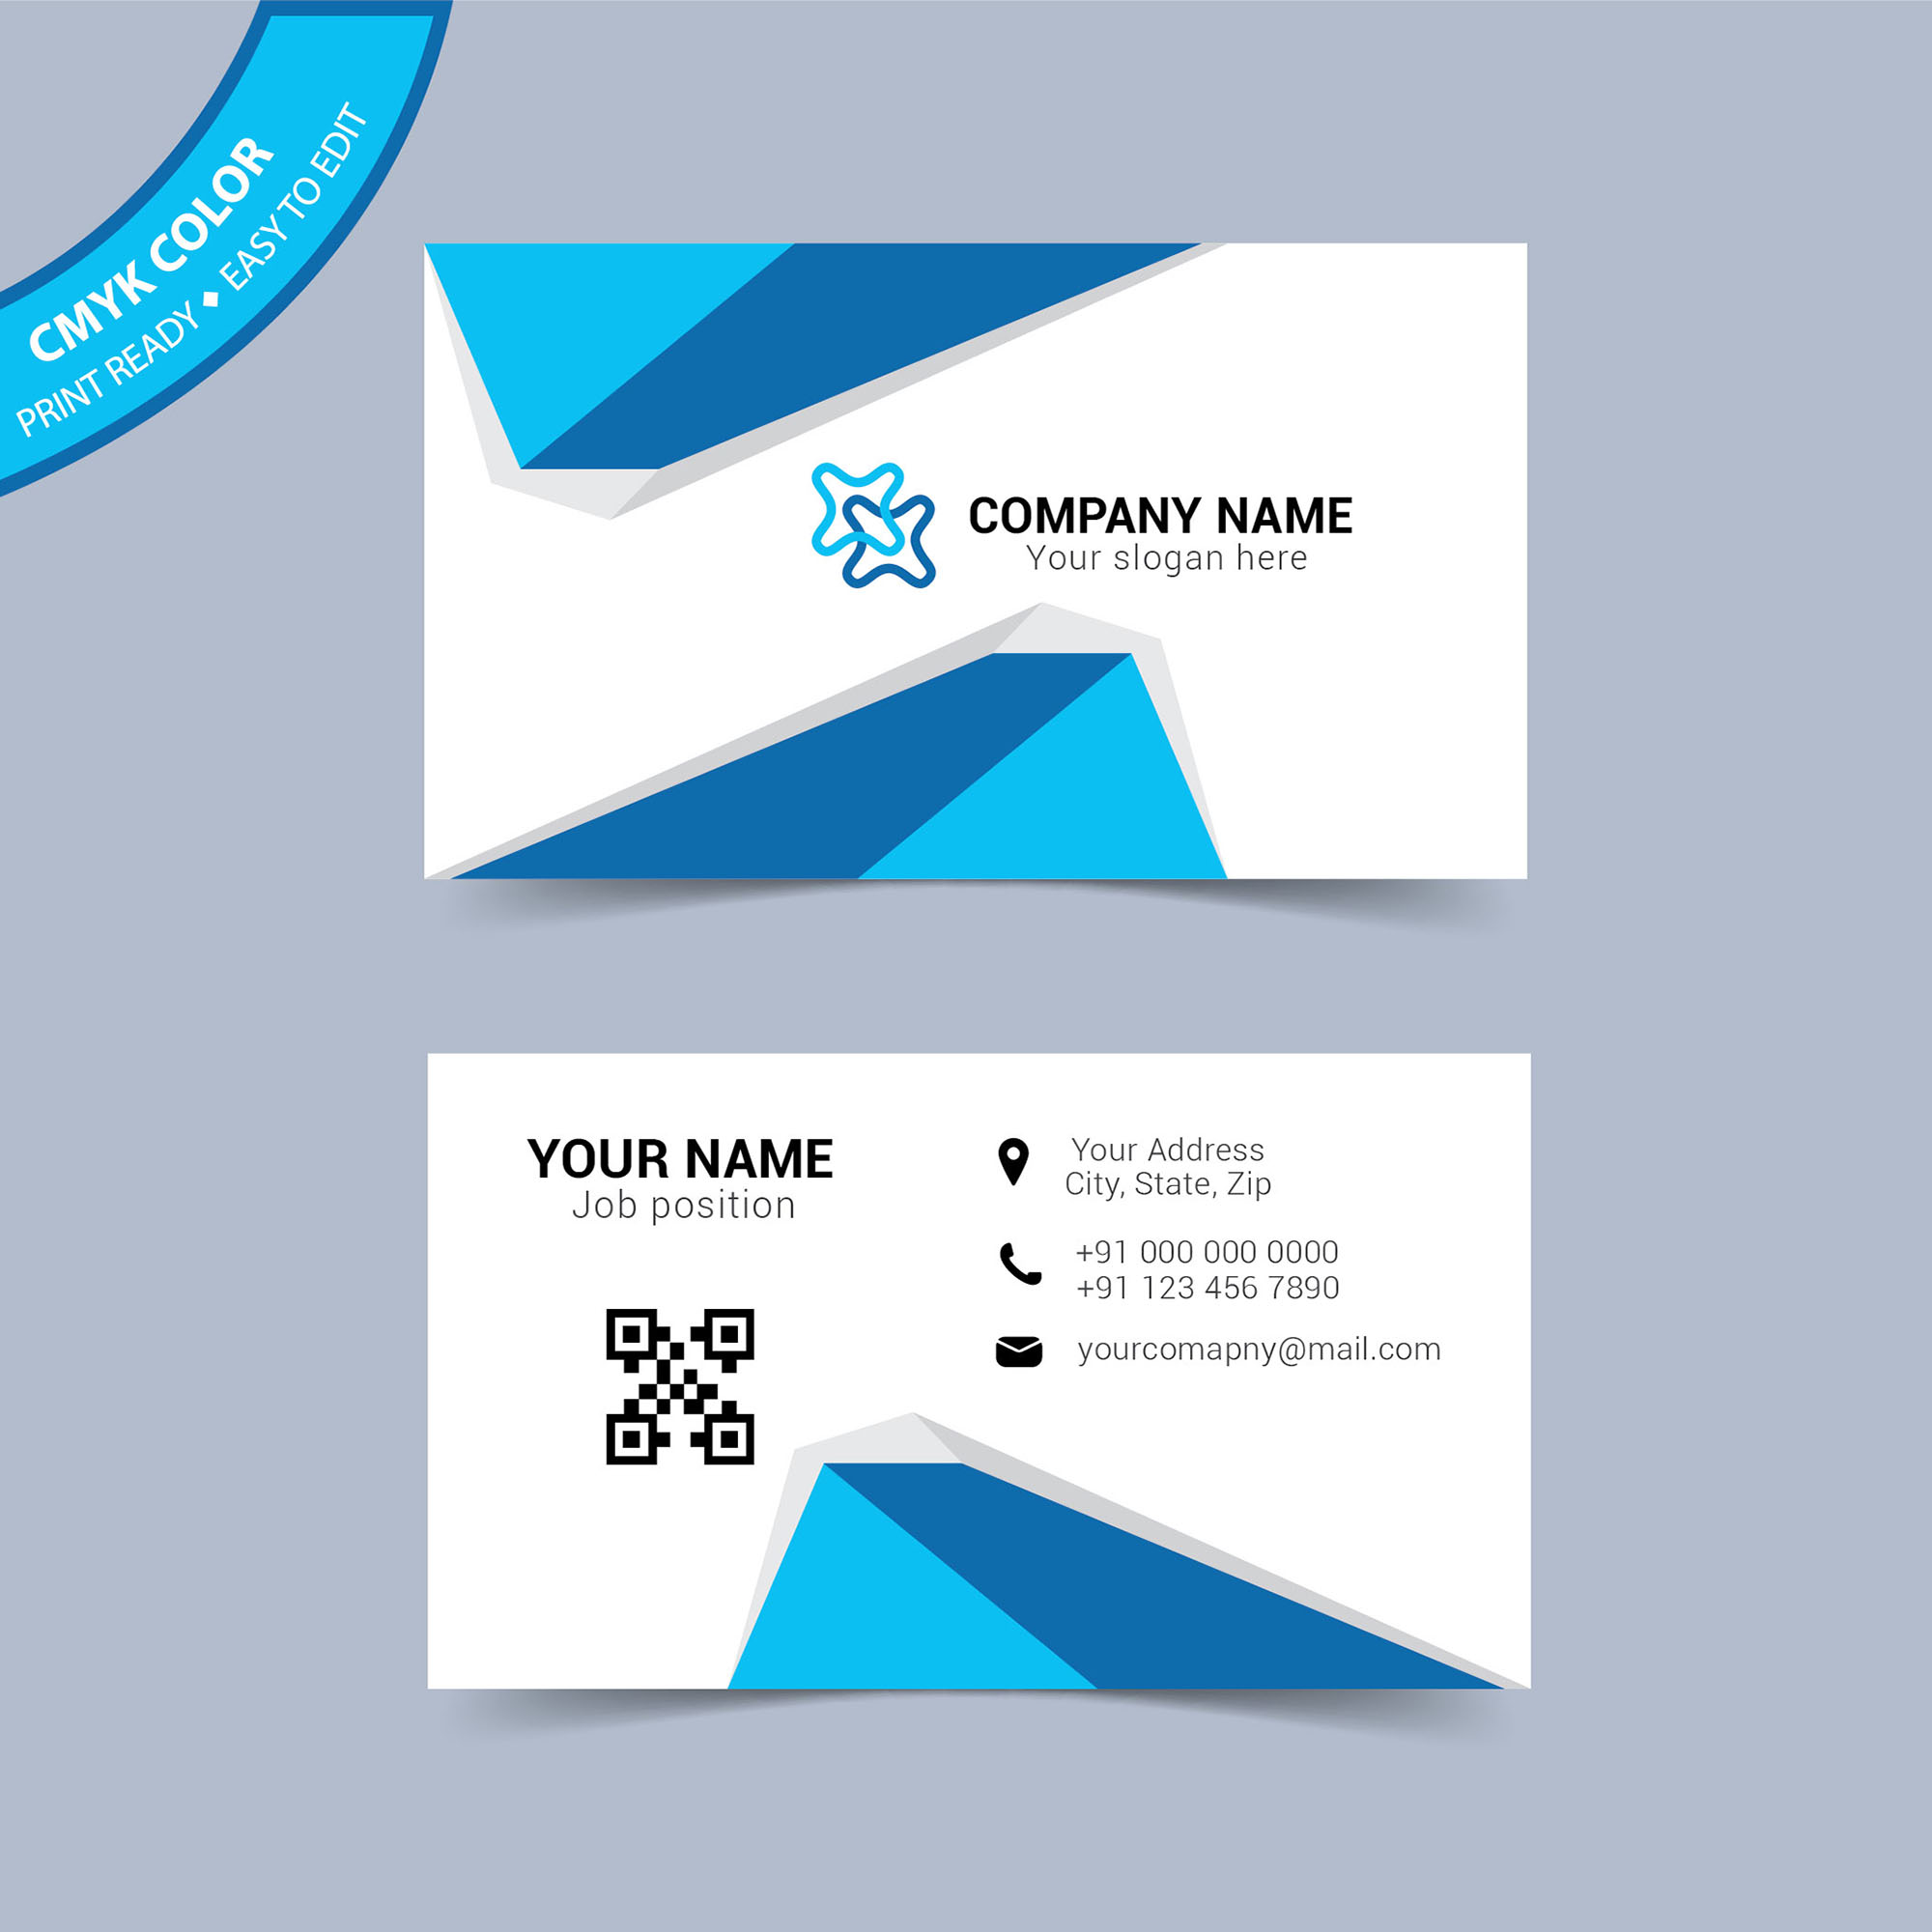 Business card layout template free download wisxi business card business cards business card design business card template design templates cheaphphosting Image collections